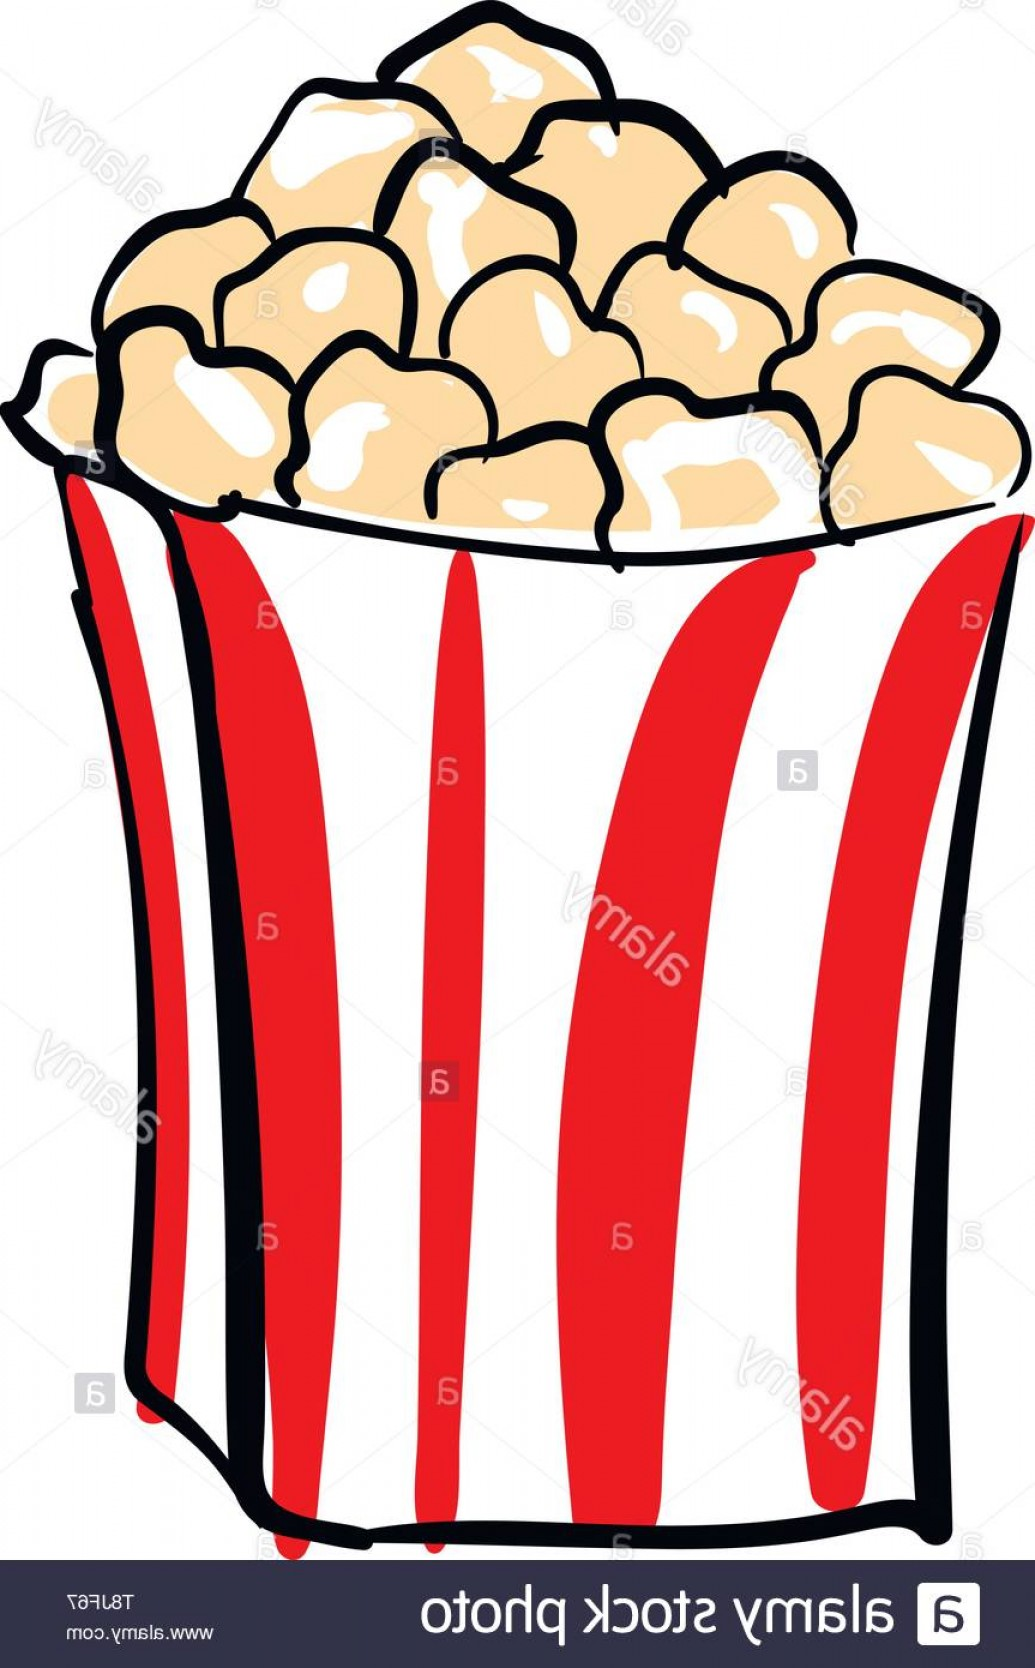 Snack Vector: Cheesy Popcorn In Red And White Container Kids Favorite Snack Vector Color Drawing Or Illustration Image